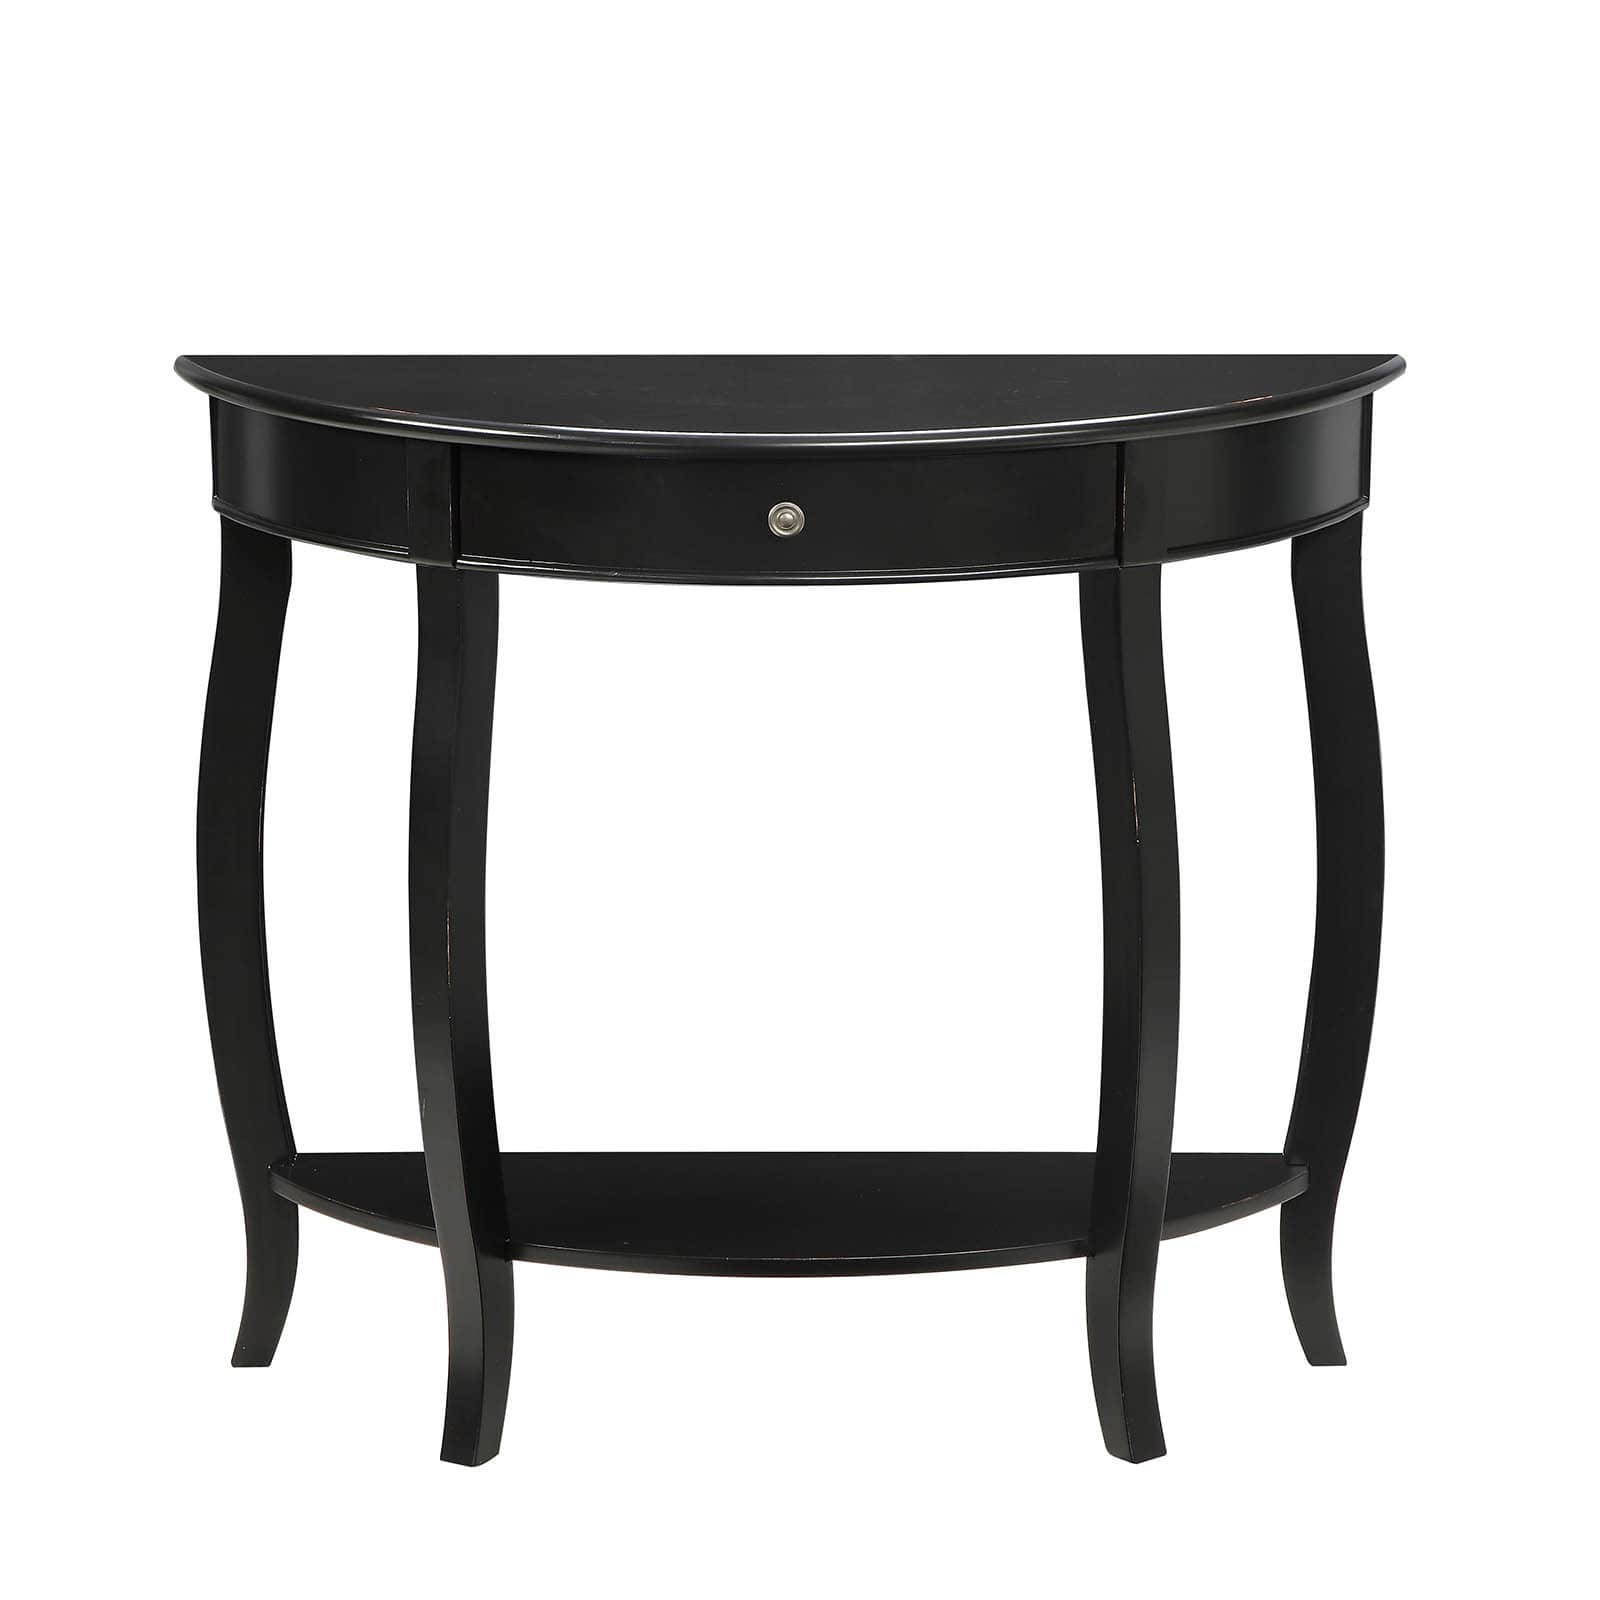 yvonne half moon console table with drawer antique black white accent free shipping today pub bistro sets victorian marble top end tables navy blue chair solid oak furniture ikea